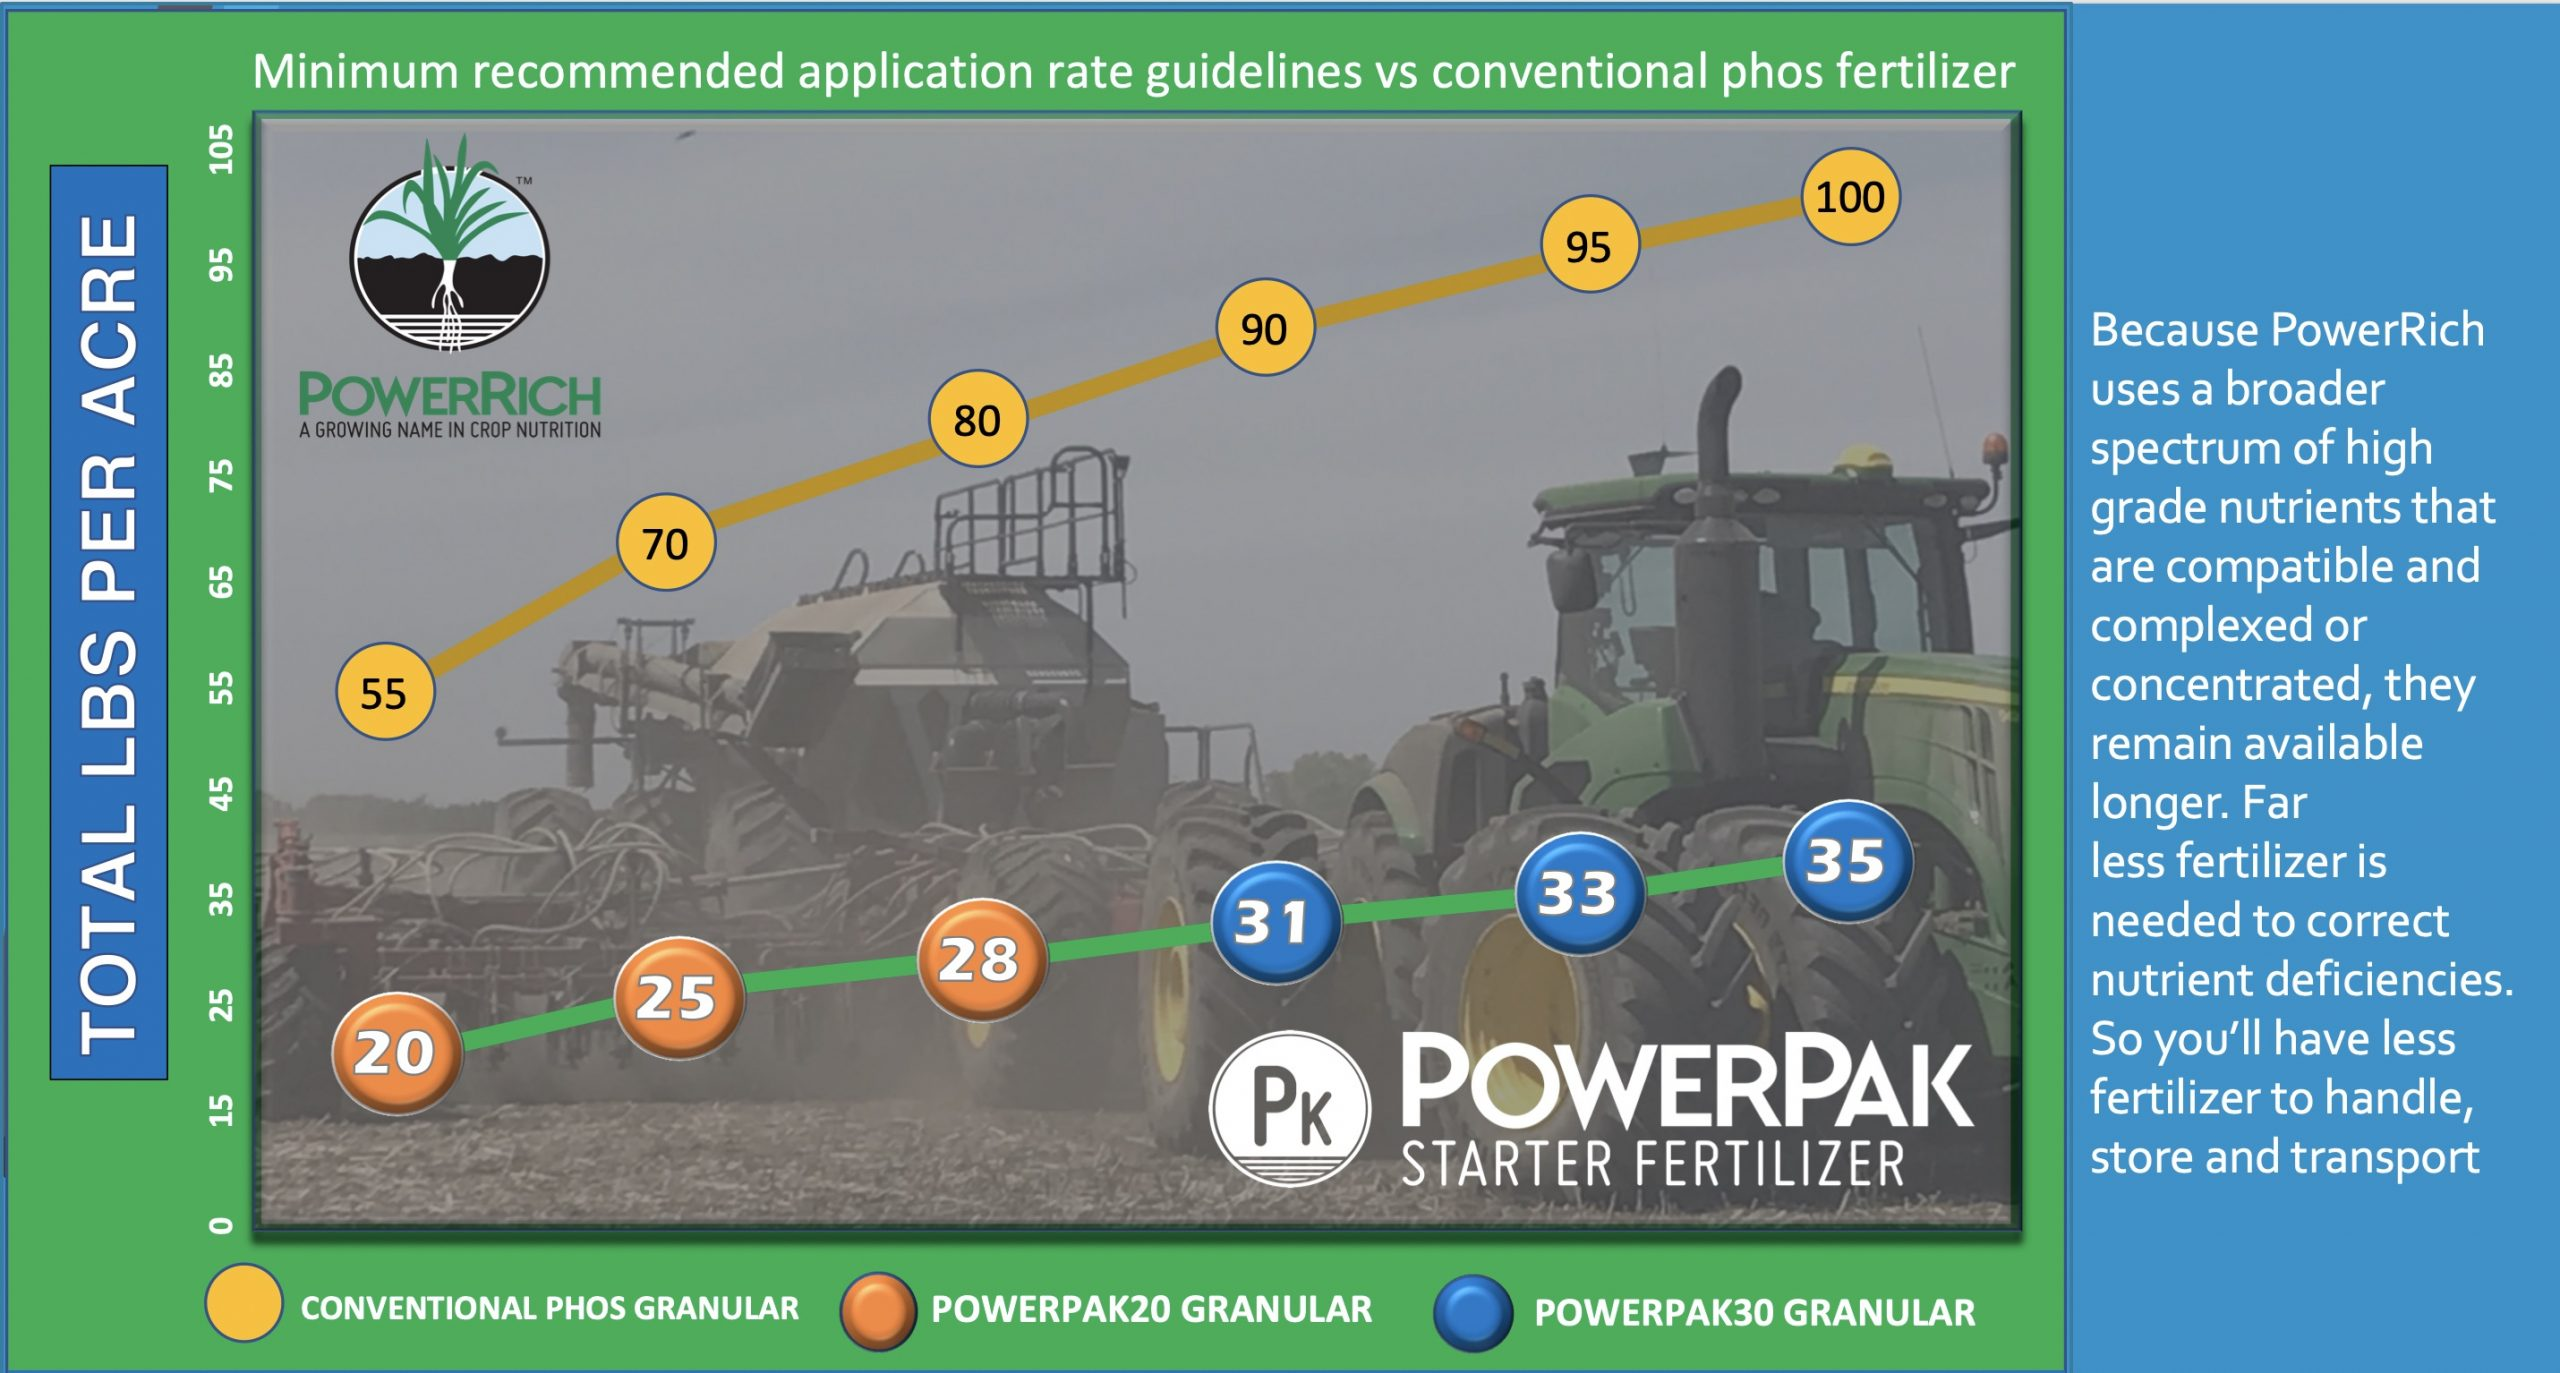 Because PowerRich uses a broader spectrum of high grade nutrients that are compatible and complexed or concentrated, they remain available for longer. Far less fertilizer is needed to correct nutrient deficiencies, so you'll have less fertilizer to handle, store and transport.